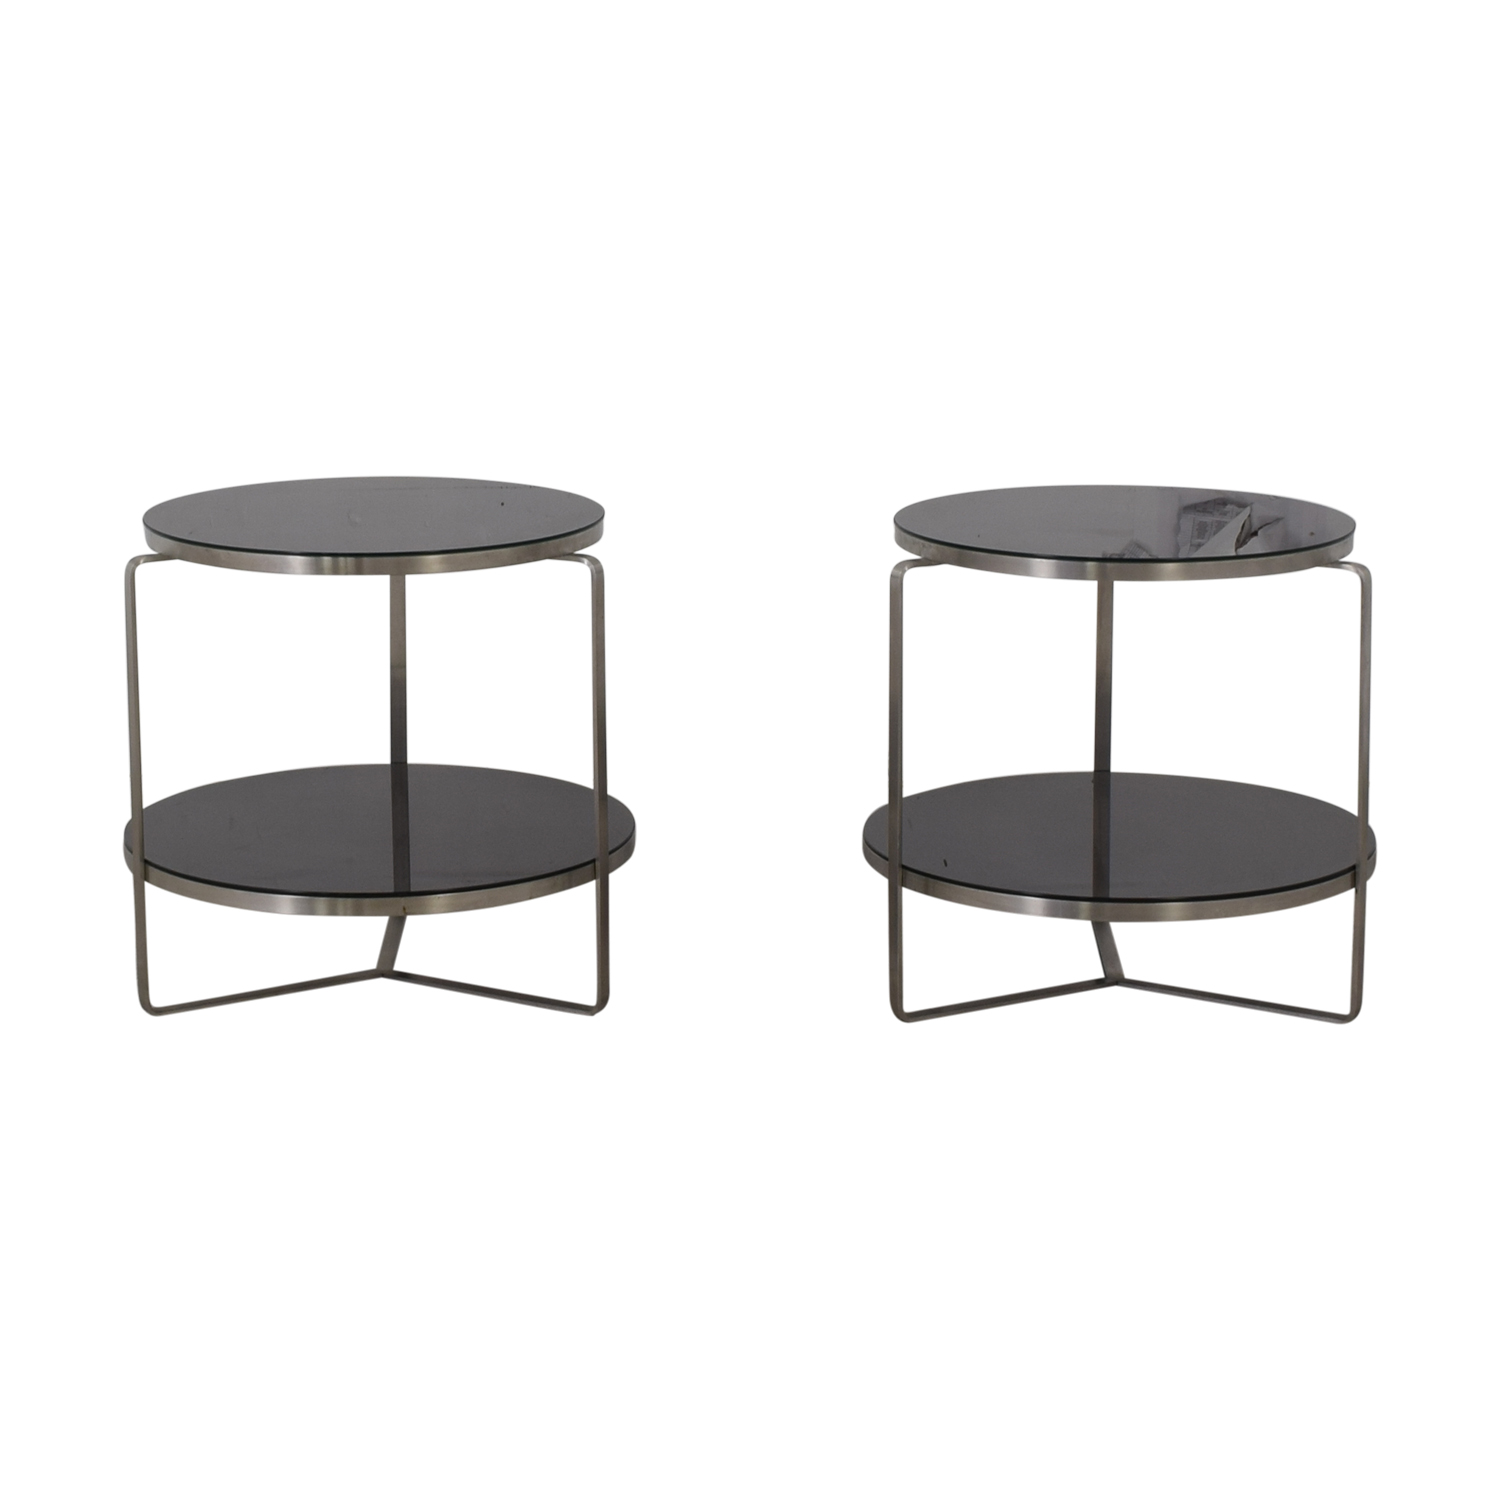 buy Tui Lifestyle Black Two Tier Glass Side Tables Tui Lifestyle End Tables